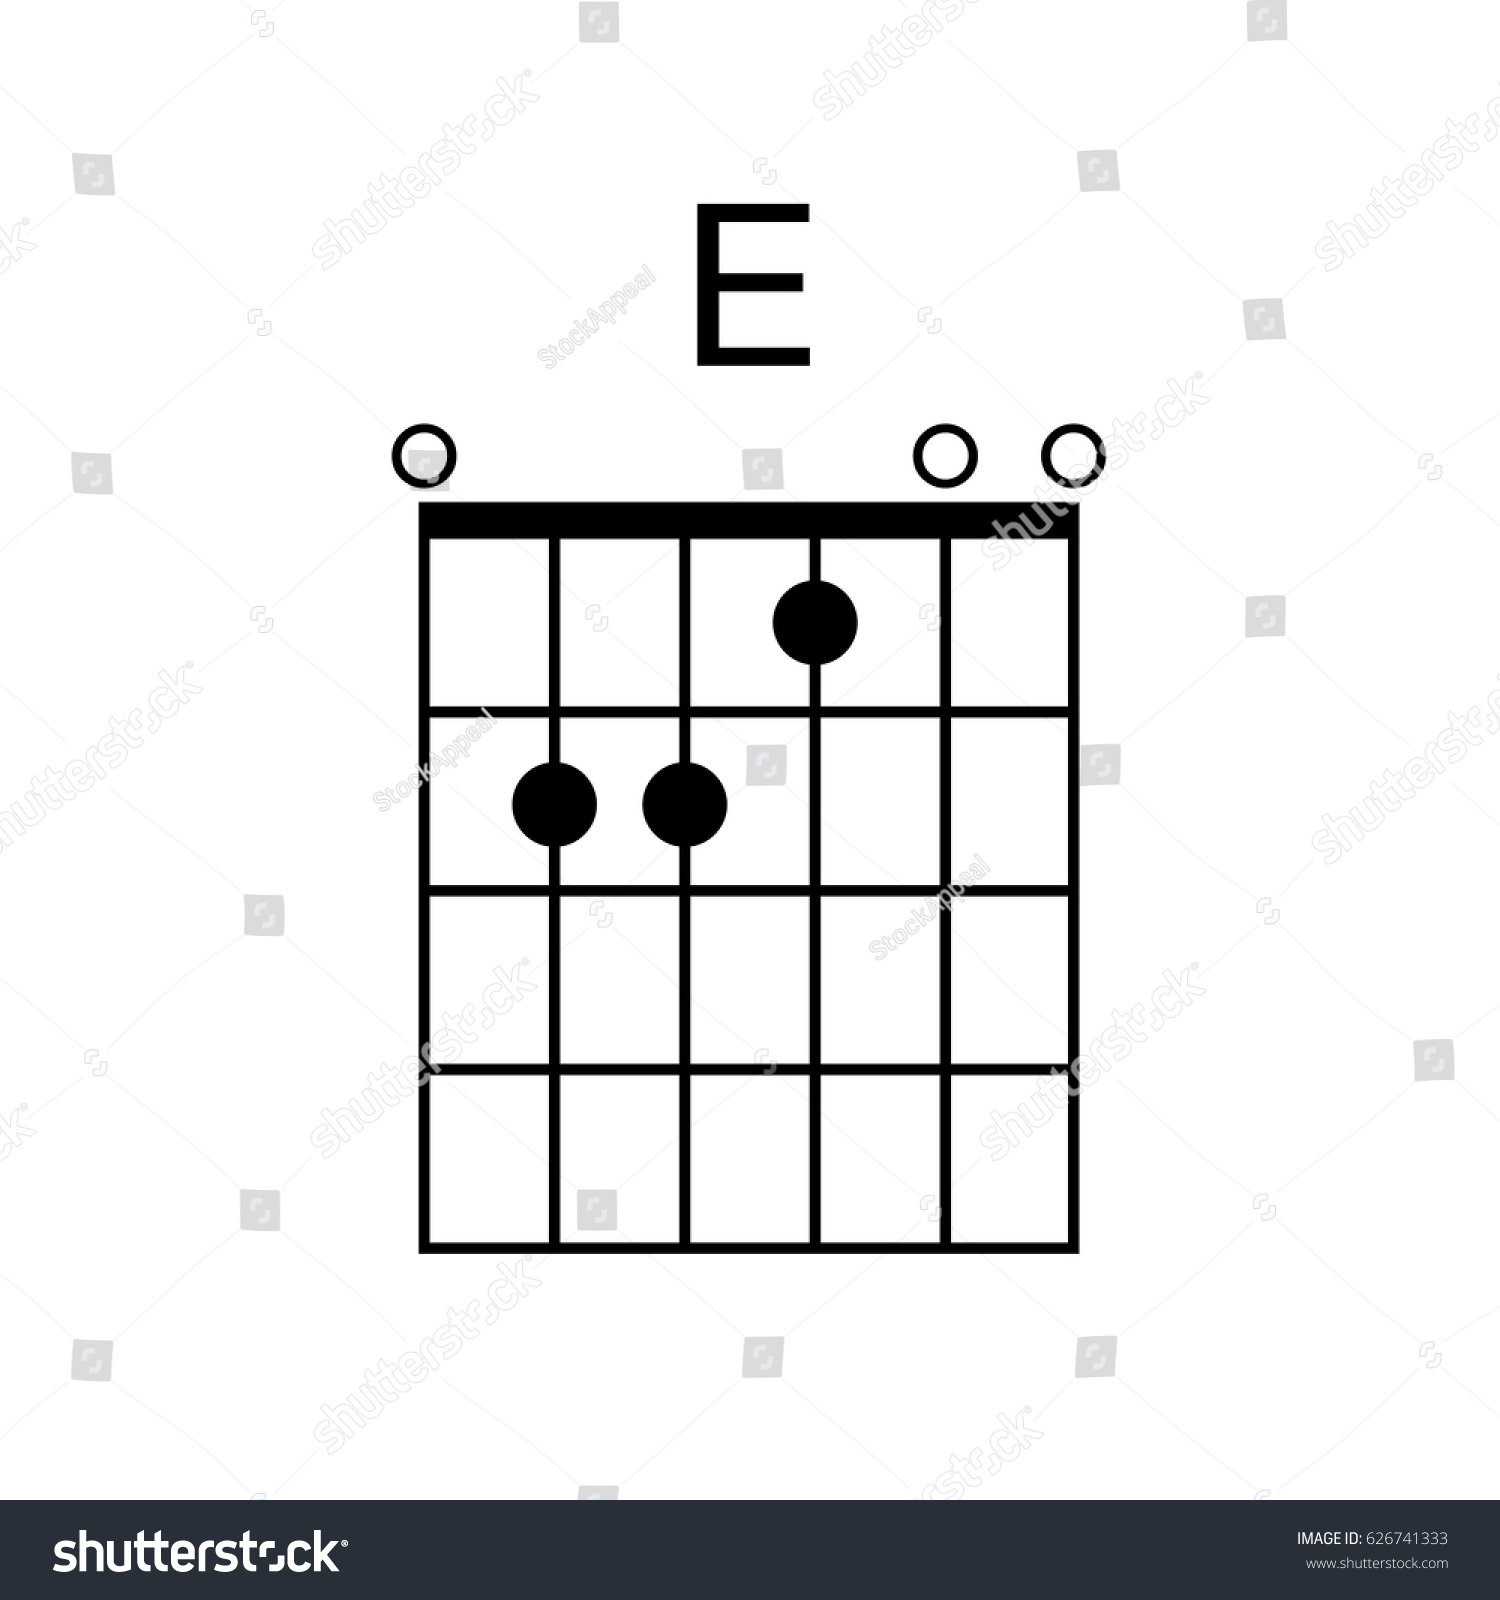 Vector Guitar Chord E Chord Diagram Stock Vector Royalty Free